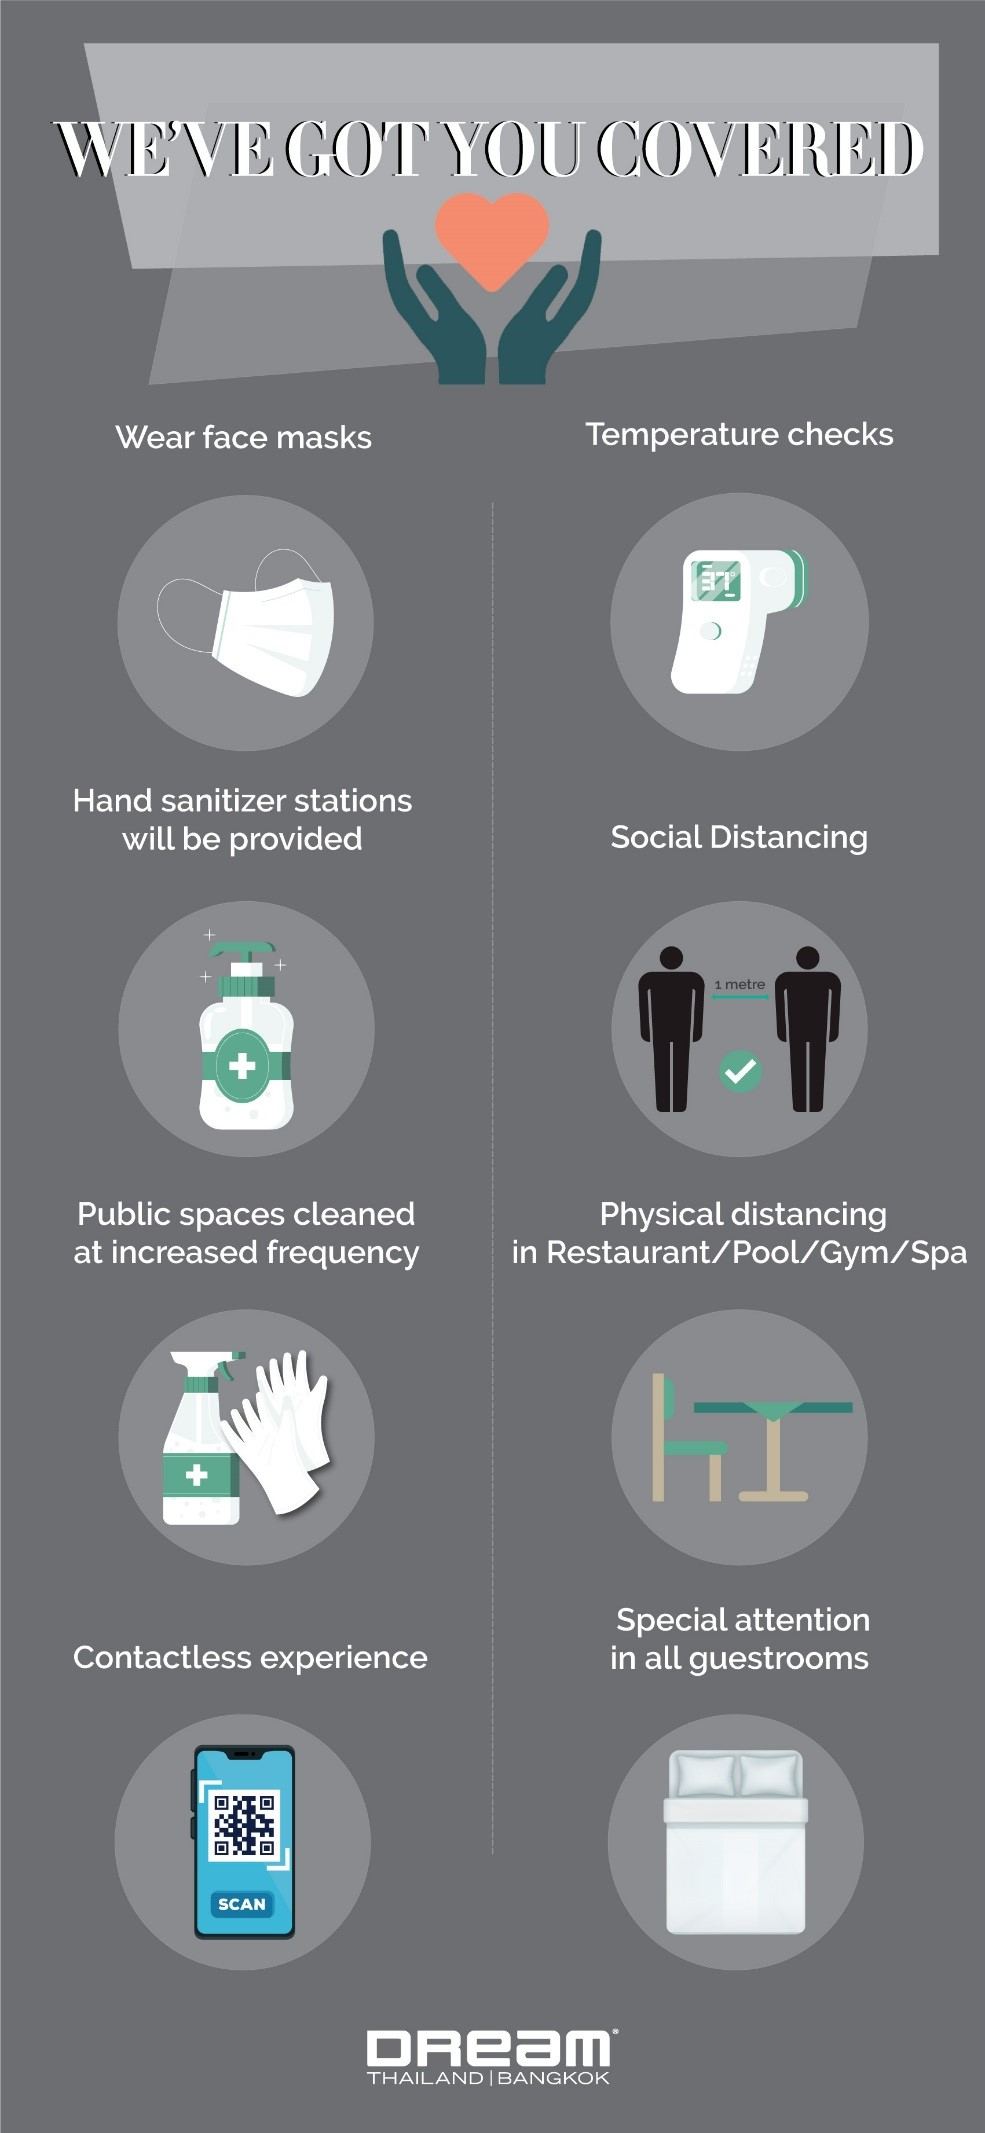 Infographic summary of information provided on the page